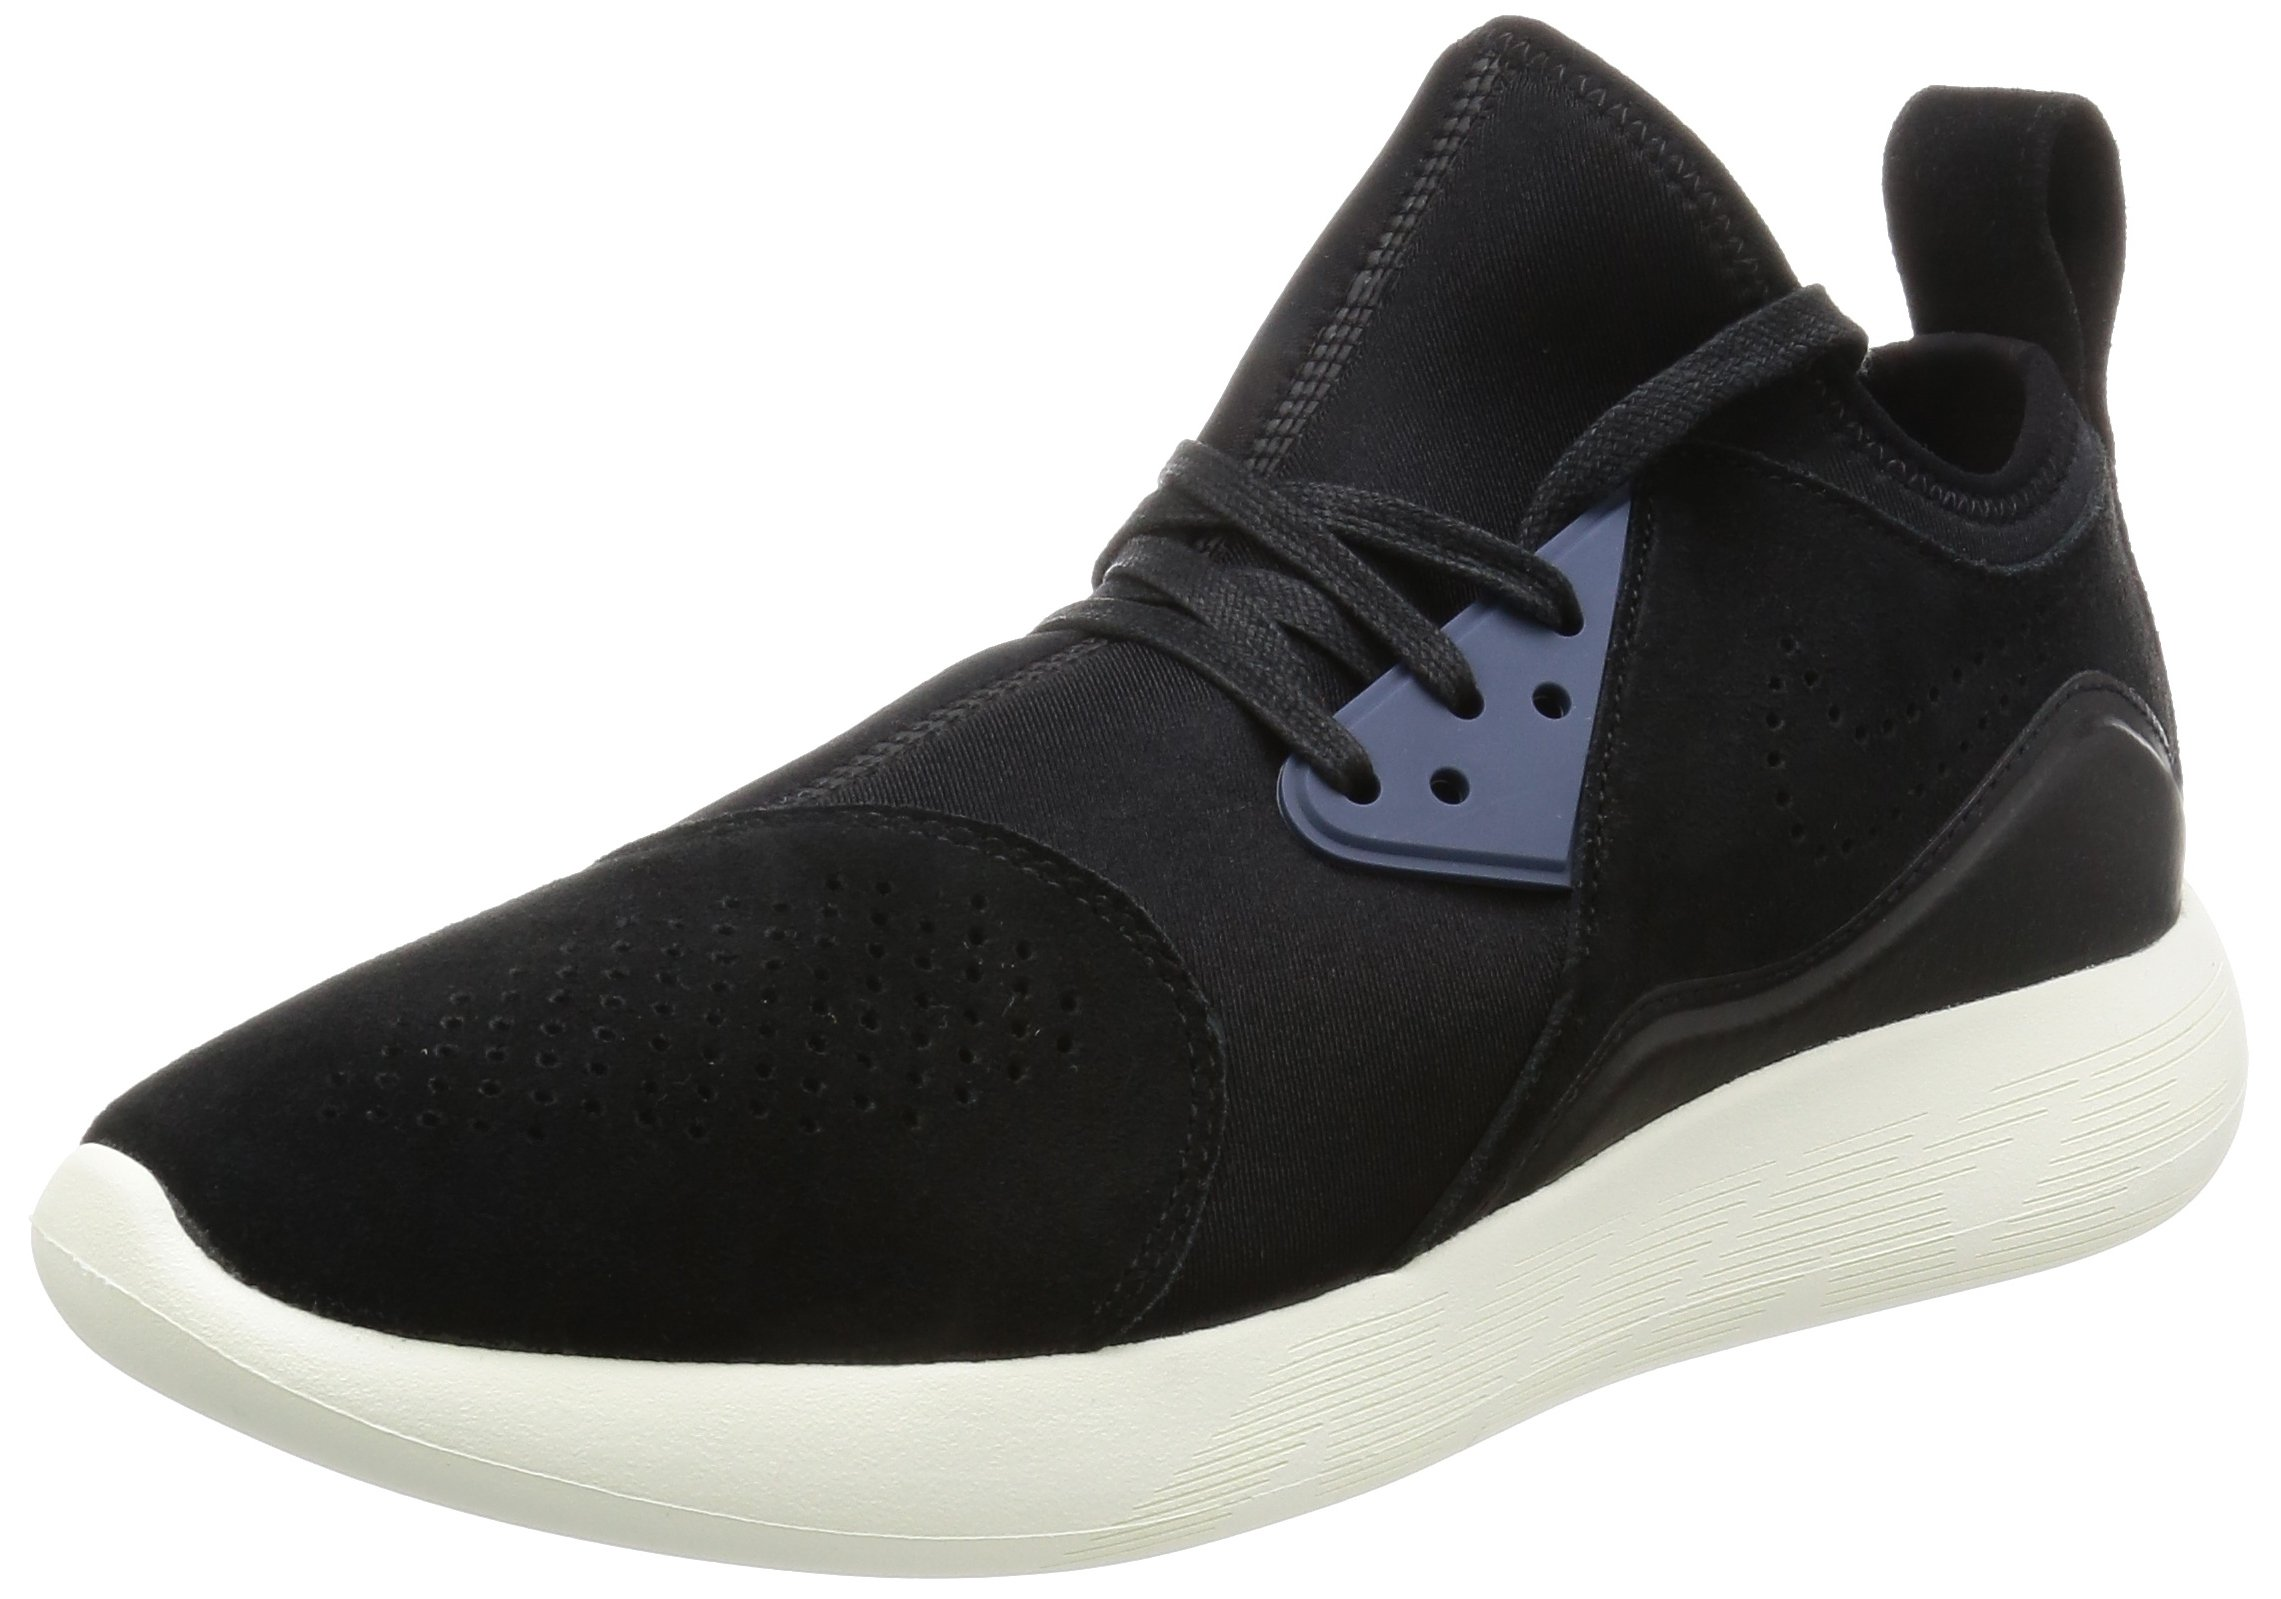 Galleon - Nike Lunarcharge Premium Mens Running Trainers 923281 Sneakers  Shoes (UK 8.5 US 9.5 EU 43 dde723227